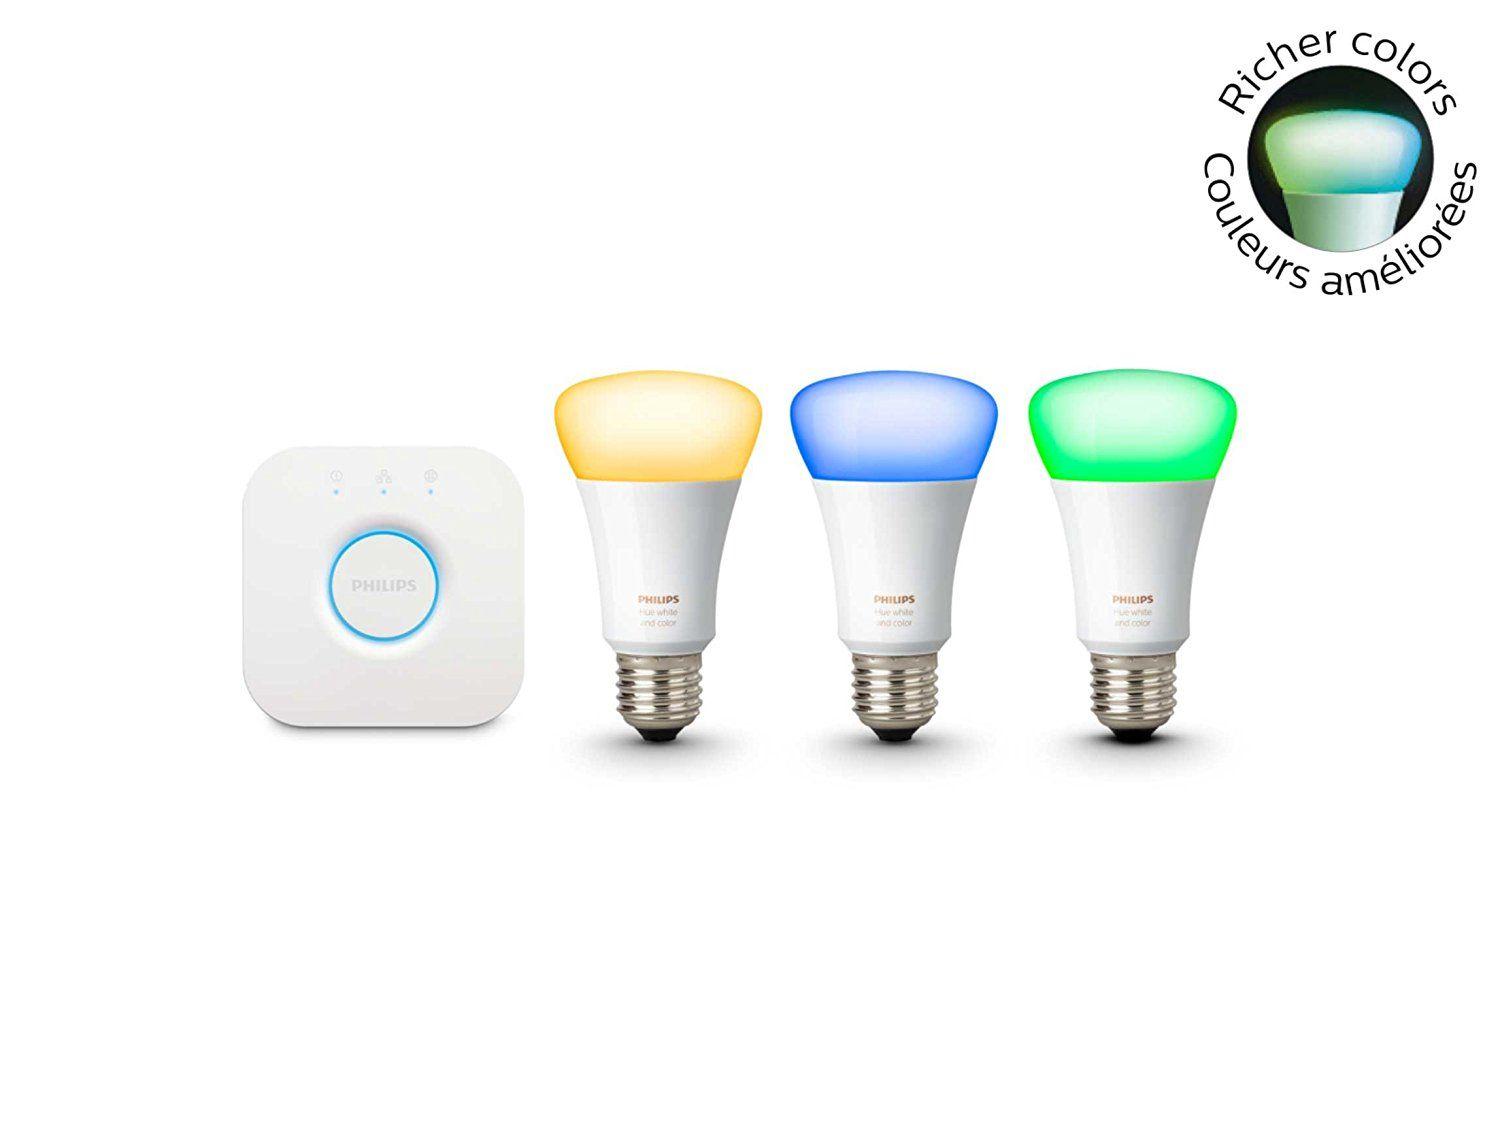 Philips 464495 Hue White and Color Ambiance A19 Starter